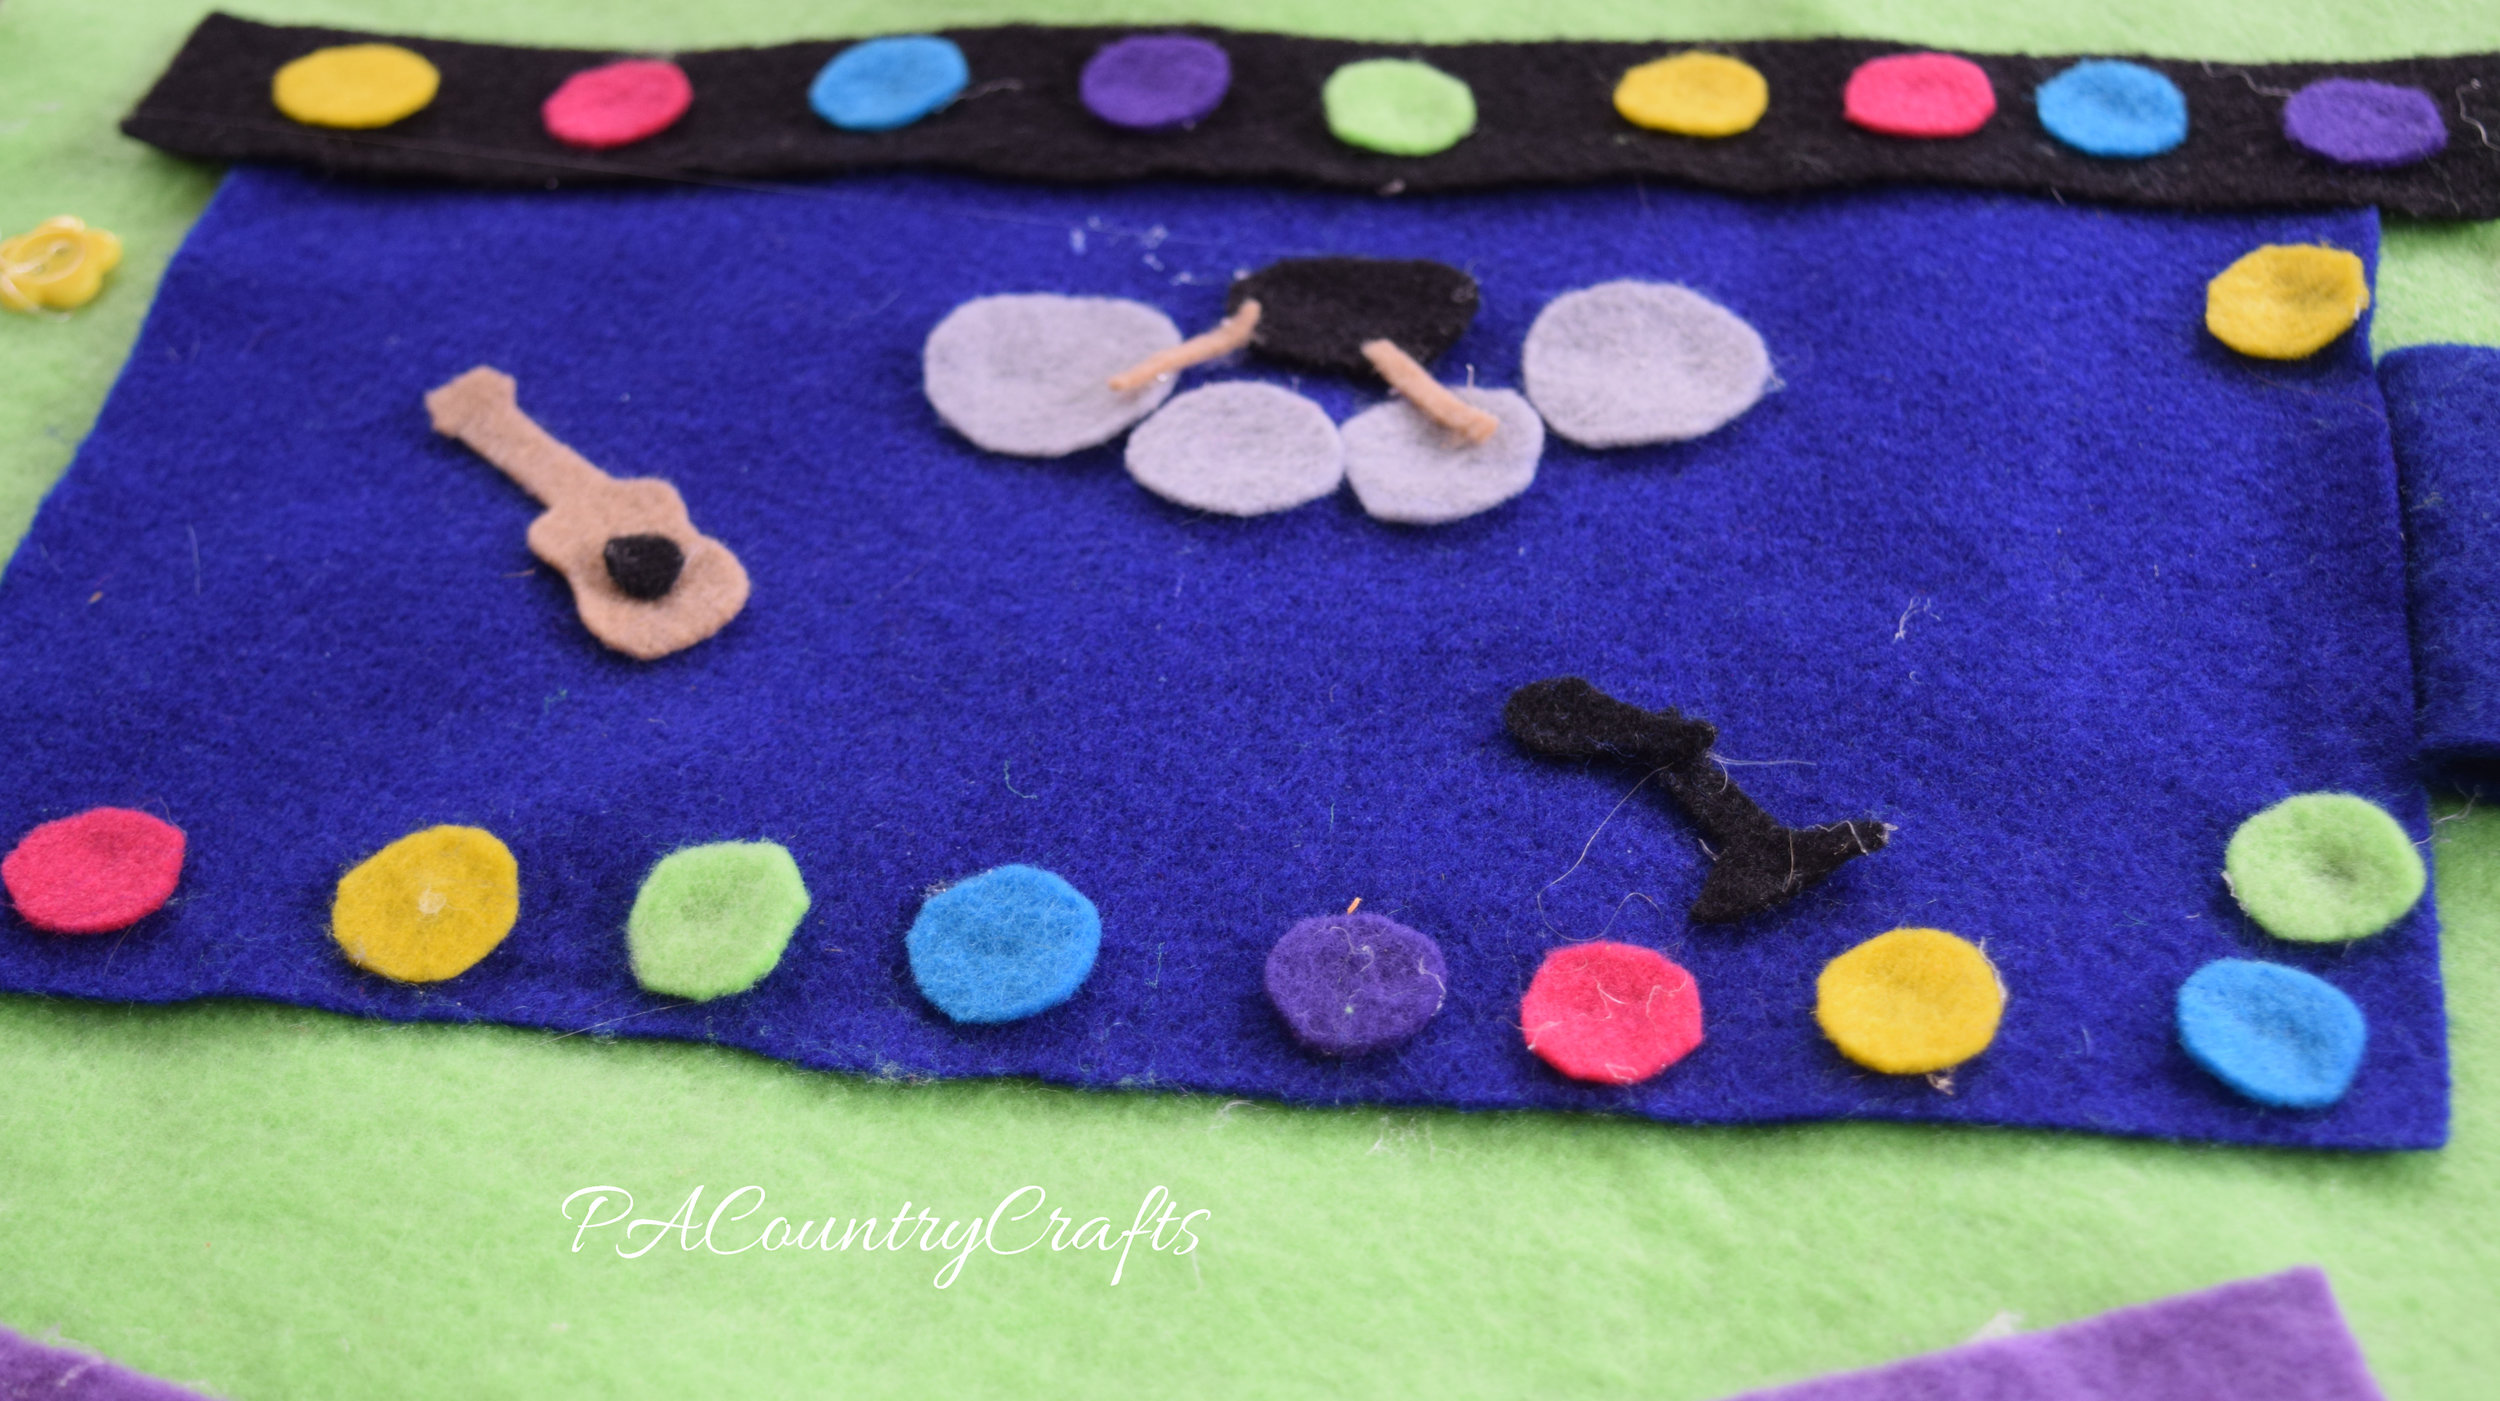 Felt stage and instruments glued to a no-sew felt playmat